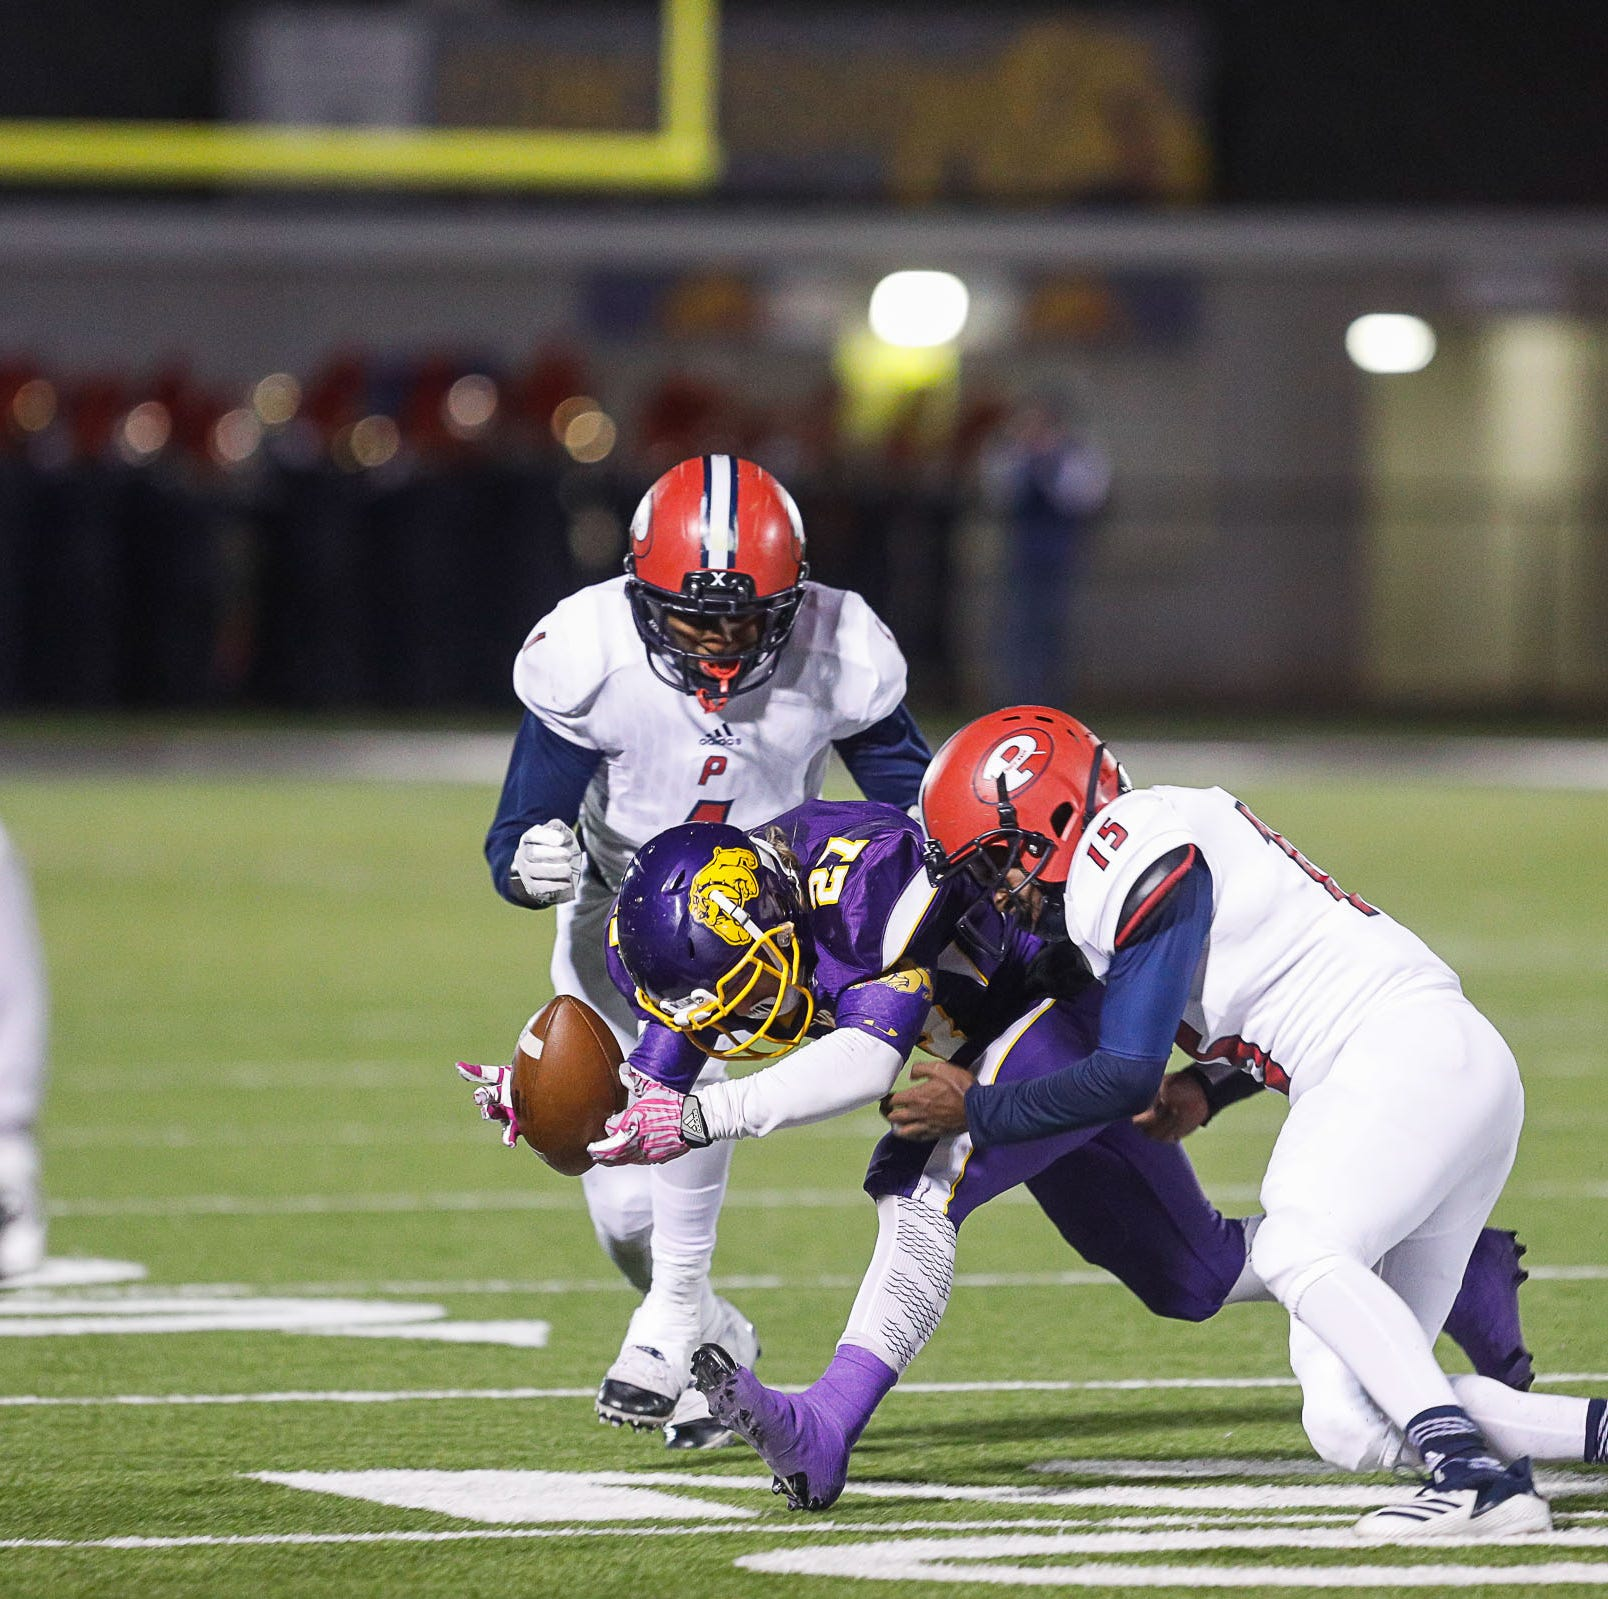 Texas High School Football Scores Nov. 8-10